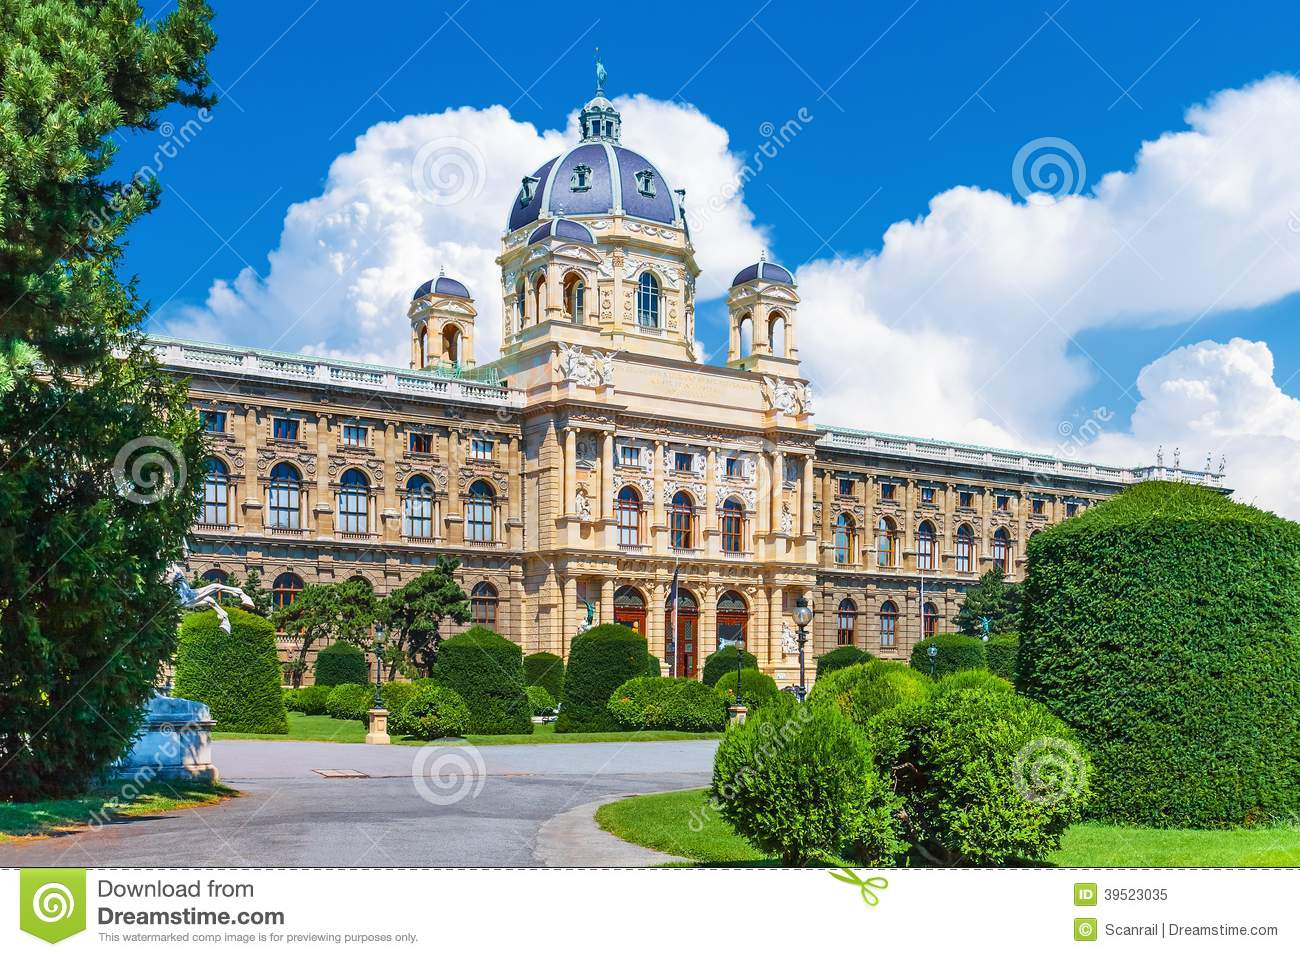 history of austria Search europe austria austria welcome to our austria family history research page here you'll find record collections, history, and genealogy resources to help you trace your austria ancestors.